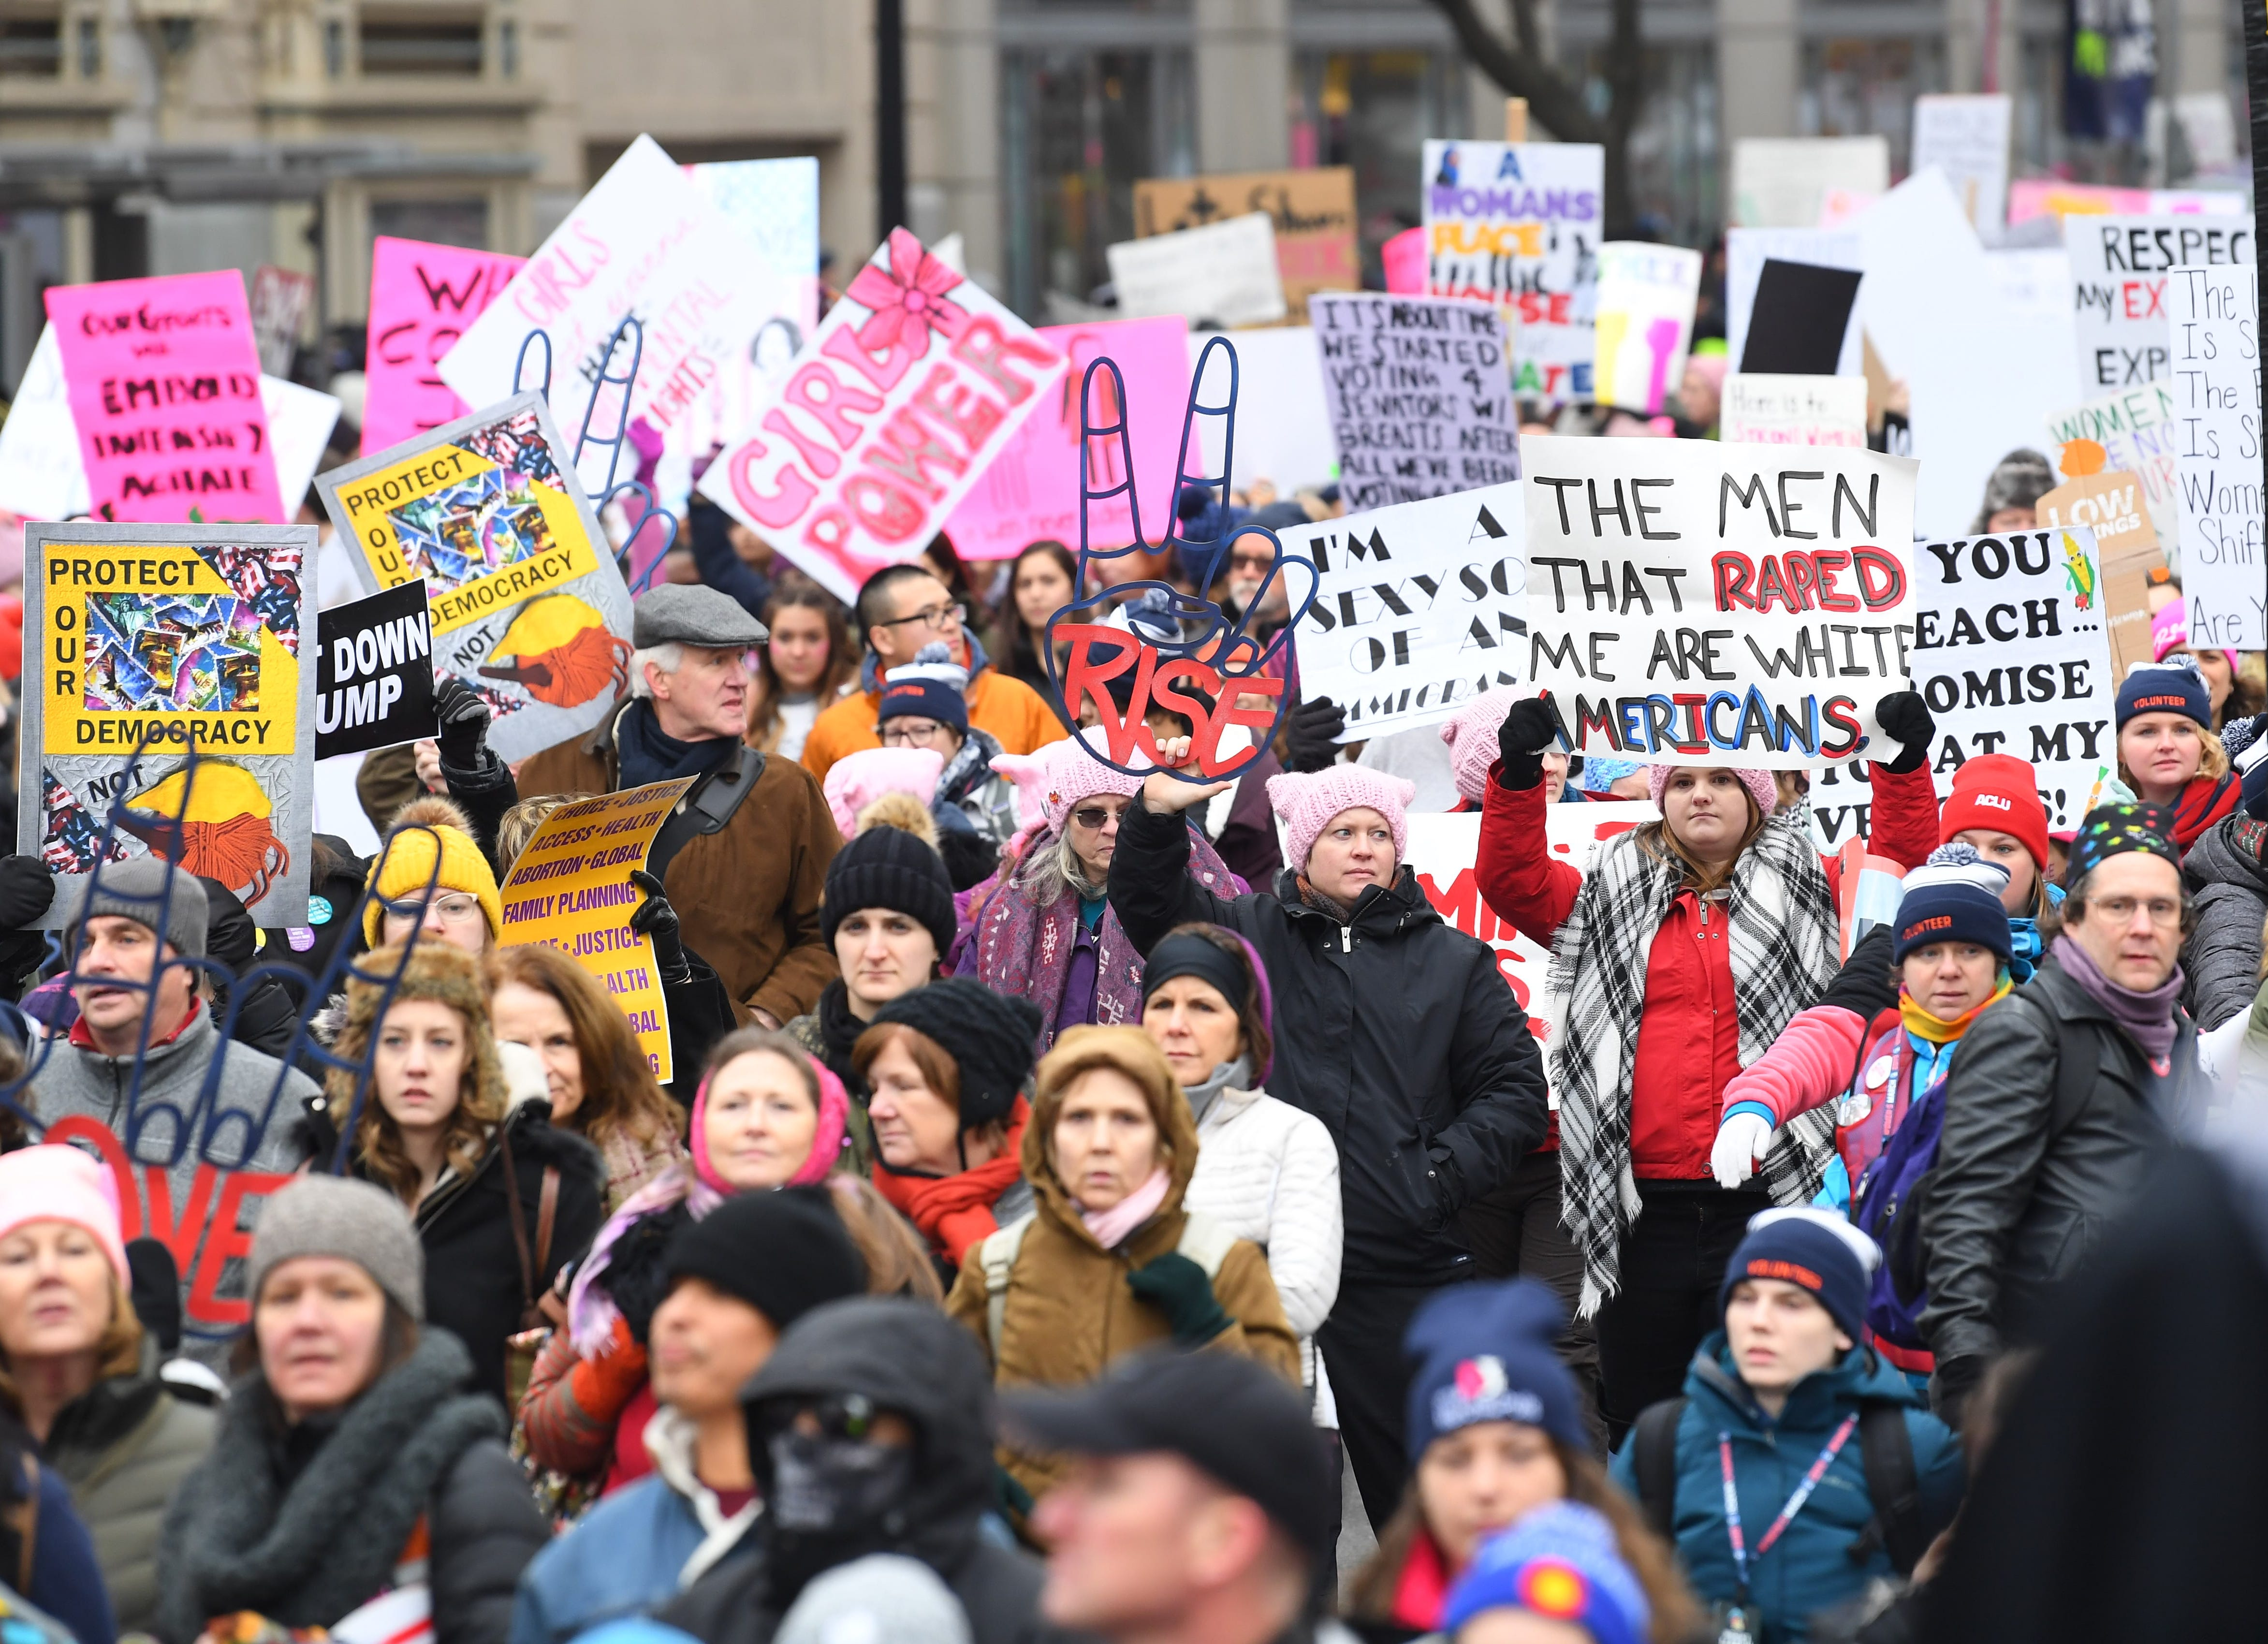 Marchers during the 2019 Women's March on Jan. 19, 2019 in Washington. The 2017 Women's March was organized to protest the first full day of President Donald Trump's term in office and at hundreds of other events in all 50 states.